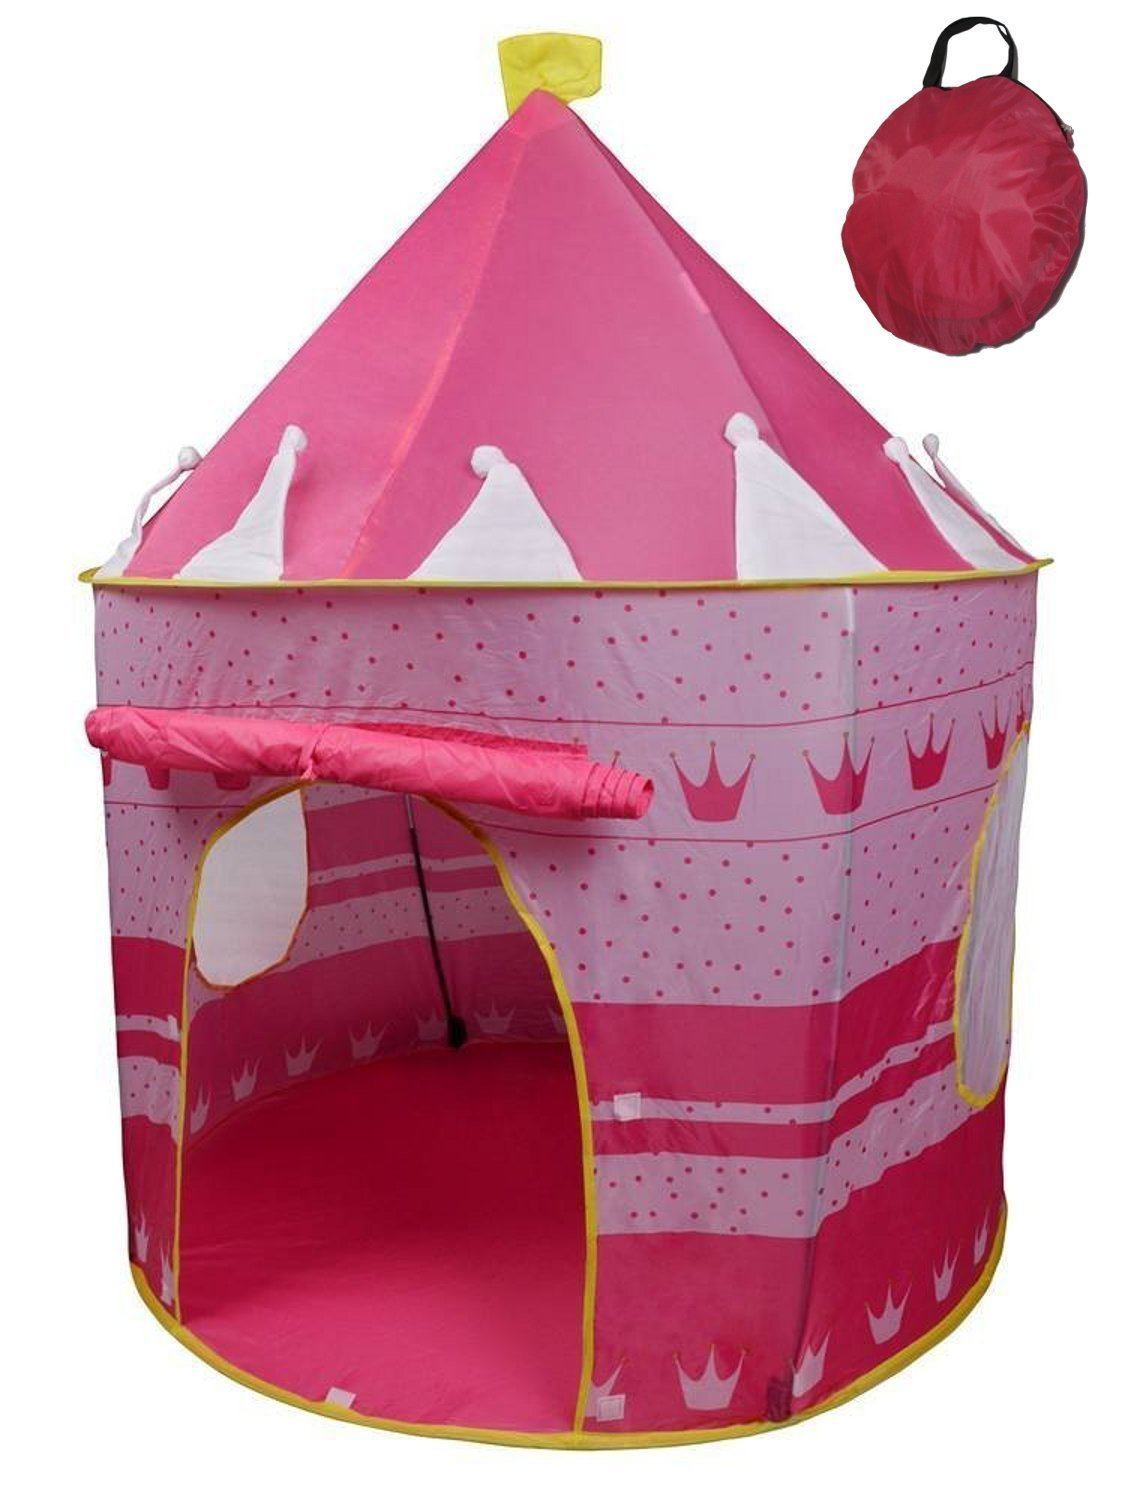 POCO DIVO Crown Princess Castle Girls Outdoor Tent Pink Indoor Play House - Walmart.com  sc 1 st  Walmart : girls tent - memphite.com